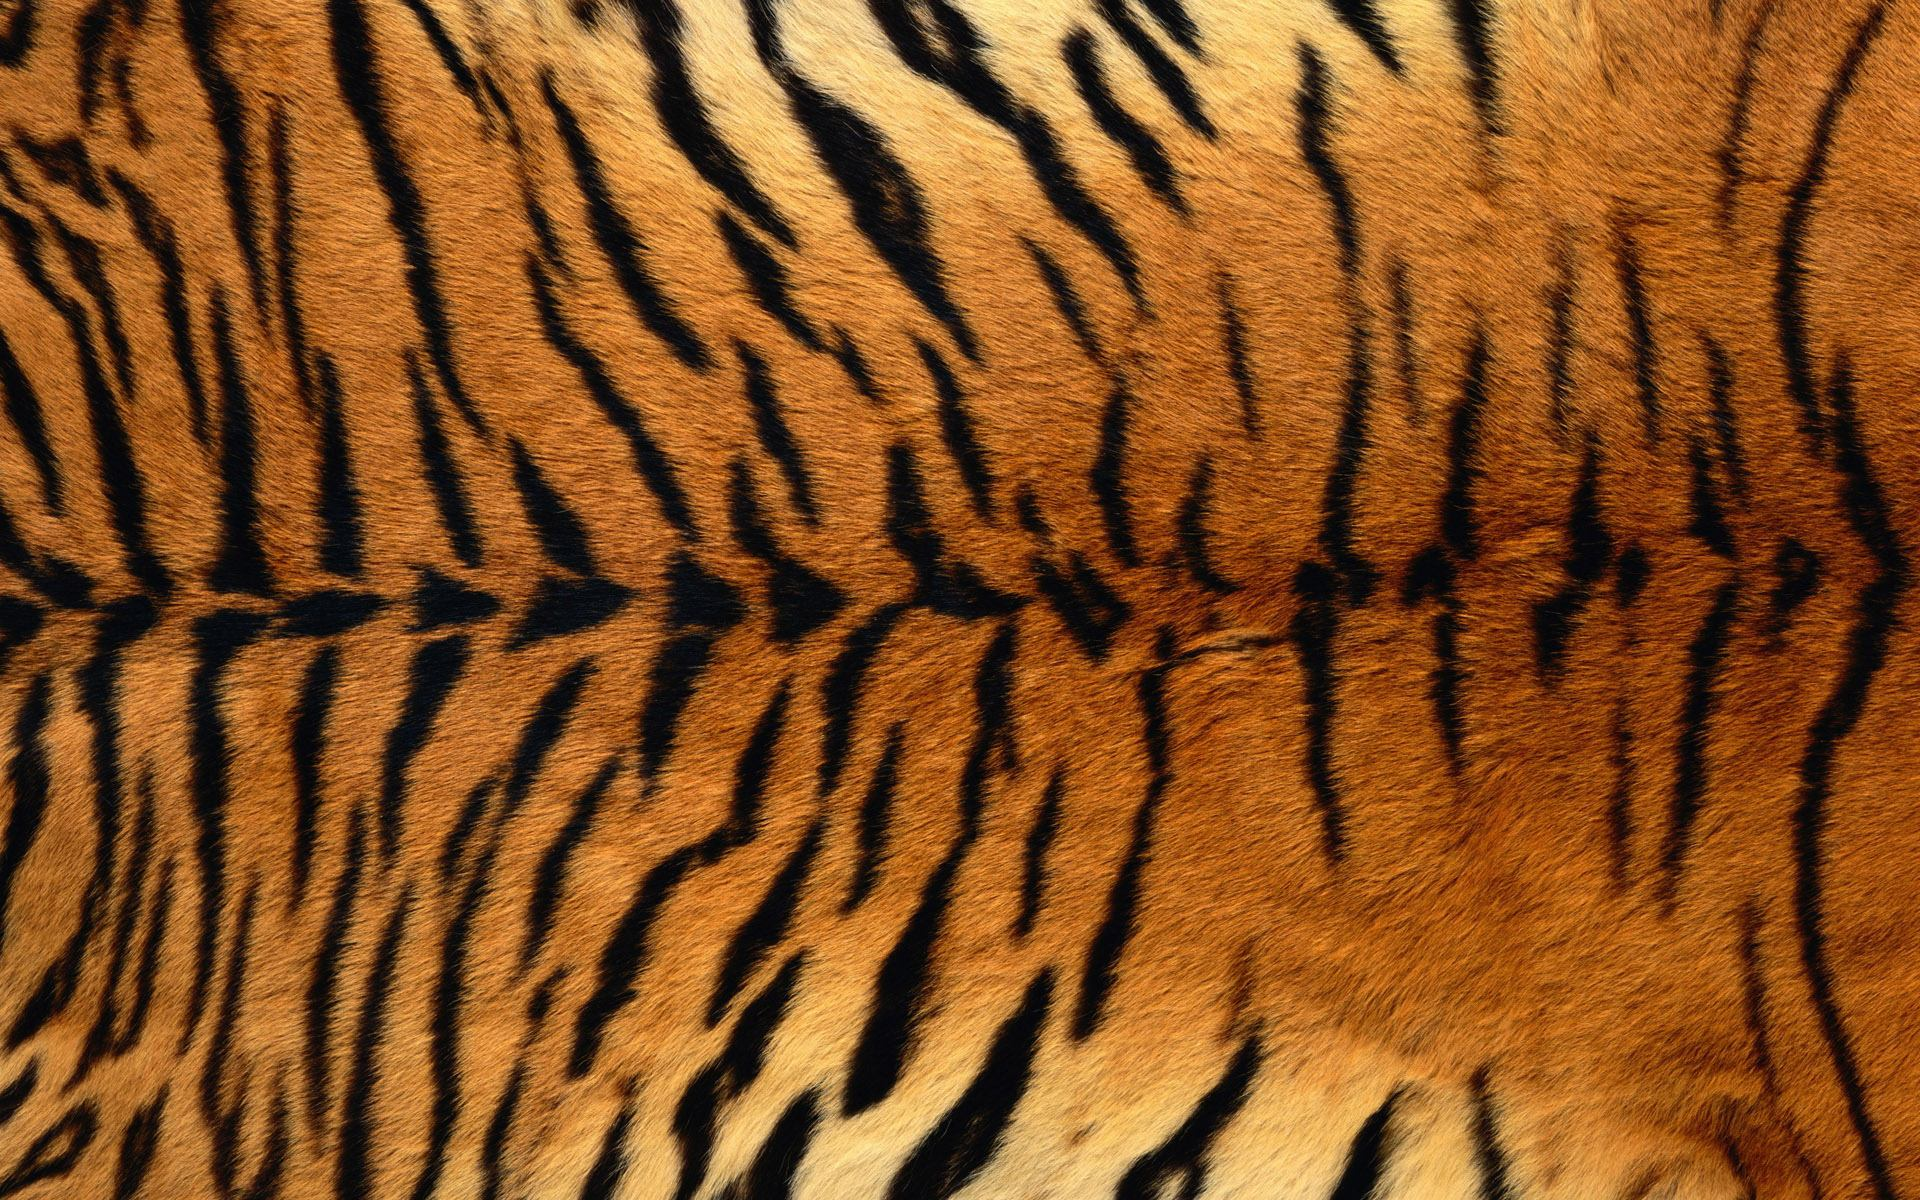 tiger body skin pattern background pctures